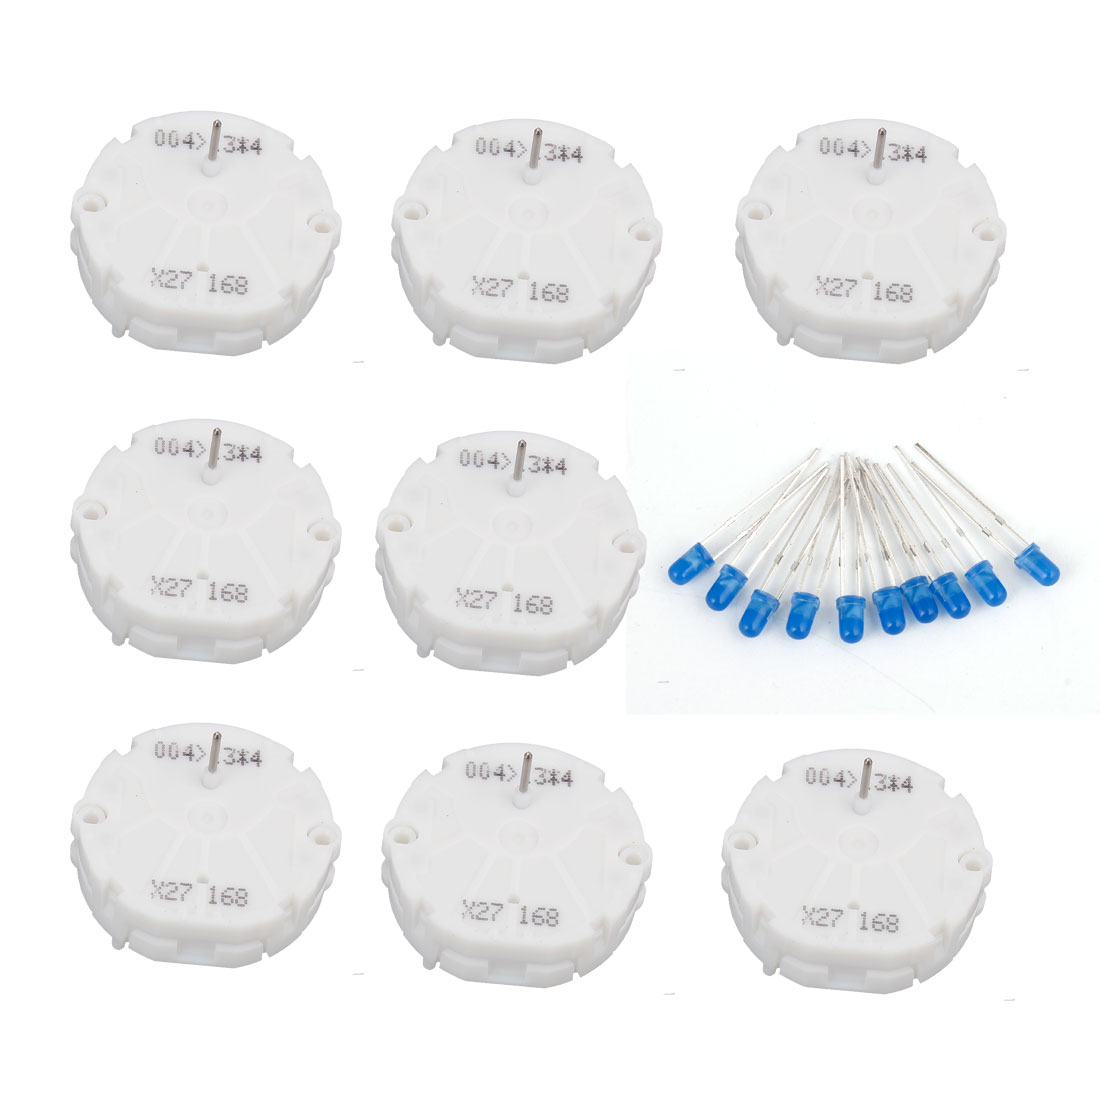 8pcs Stepper Motor Speedometer Gauge Kit X27.168 Cluster w 10pcs Blue LED Bulbs